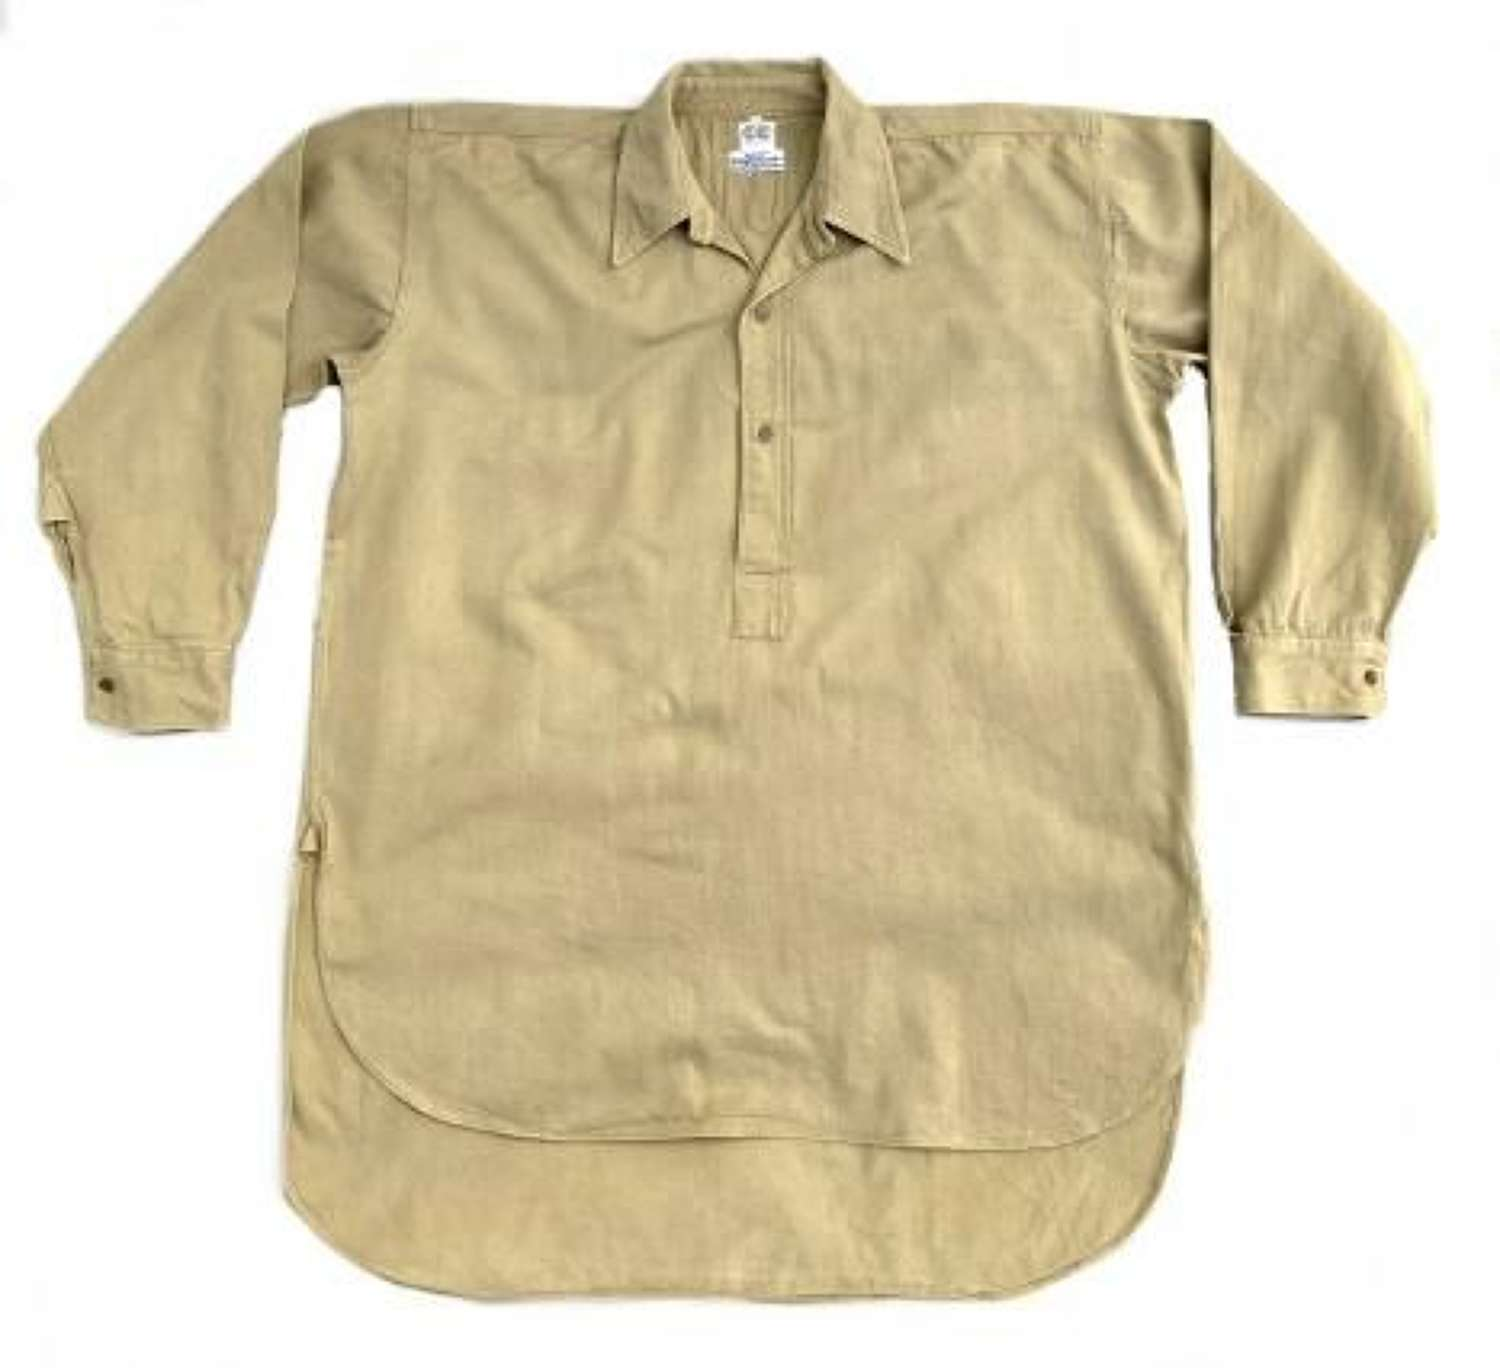 Original 1940s CC41 Utility Work Shirt - Large Size!